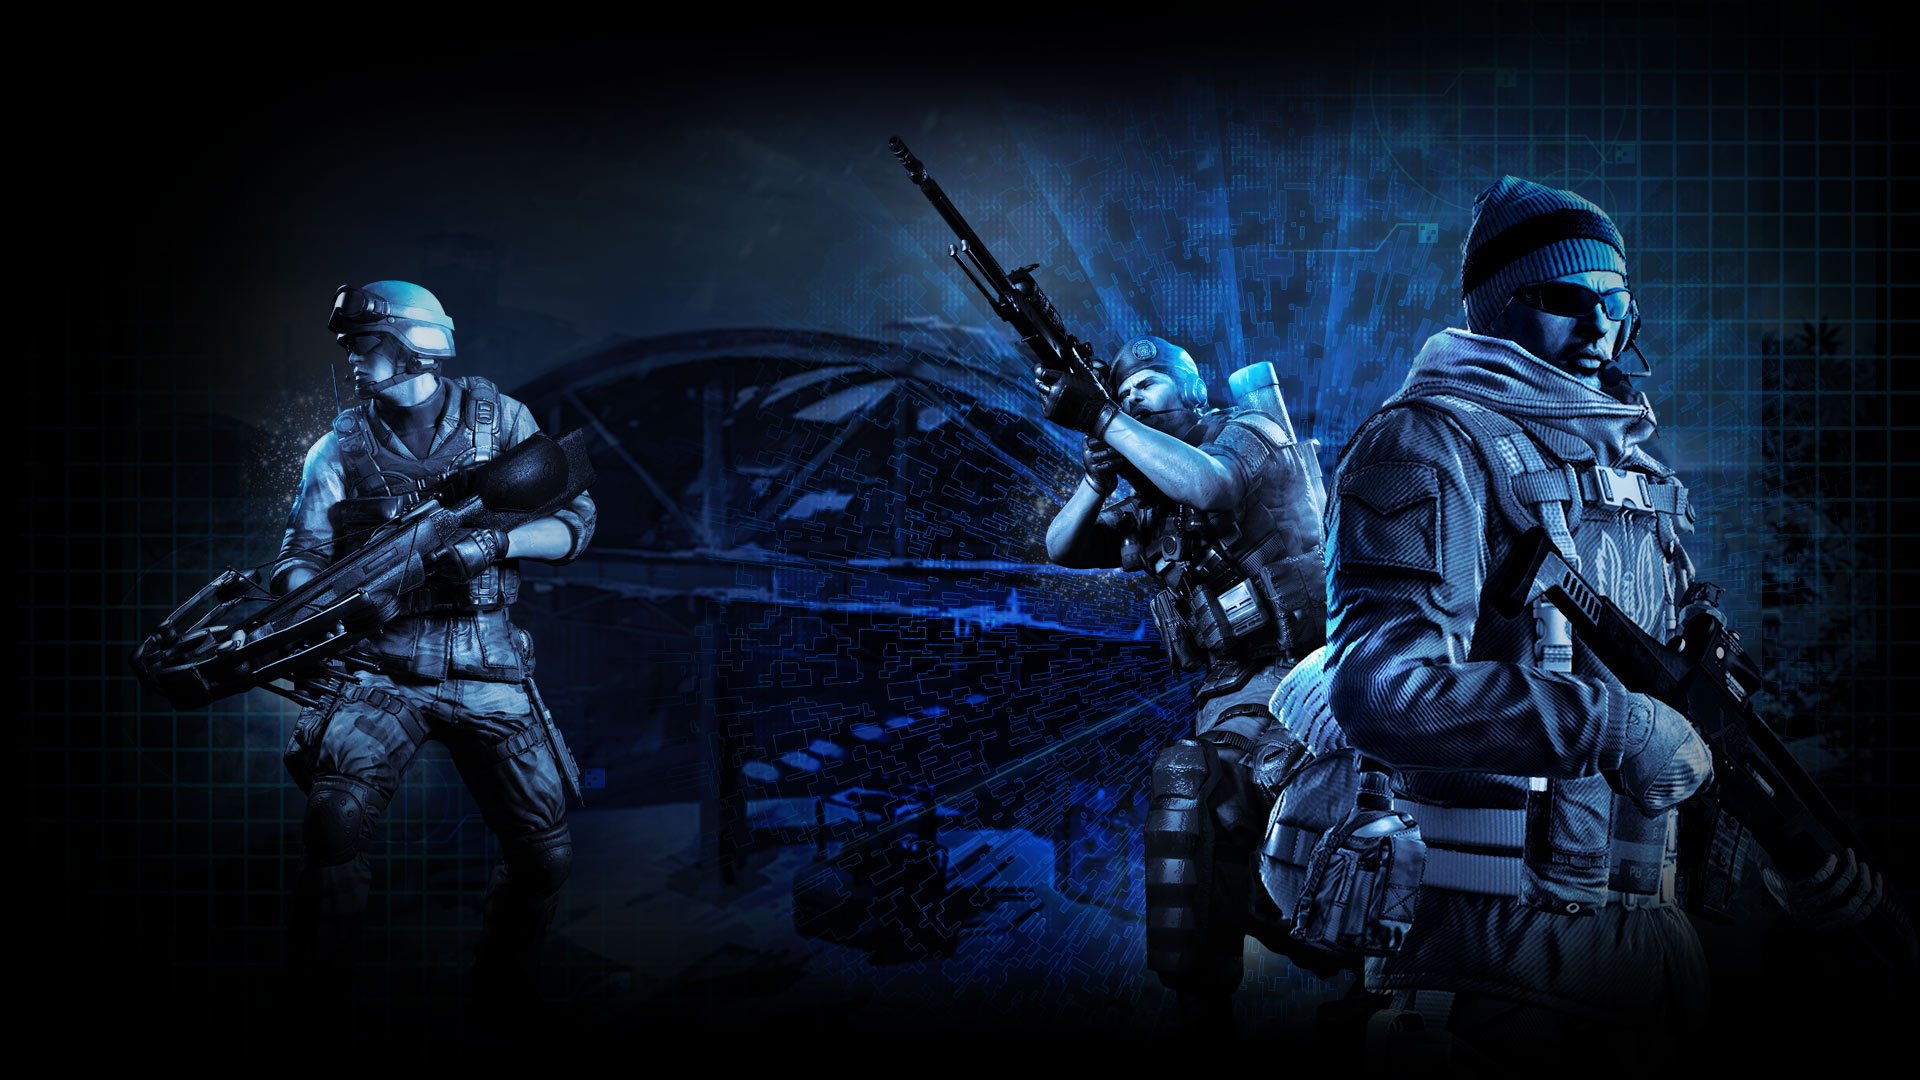 video game s k i l l special force 2 wallpaper